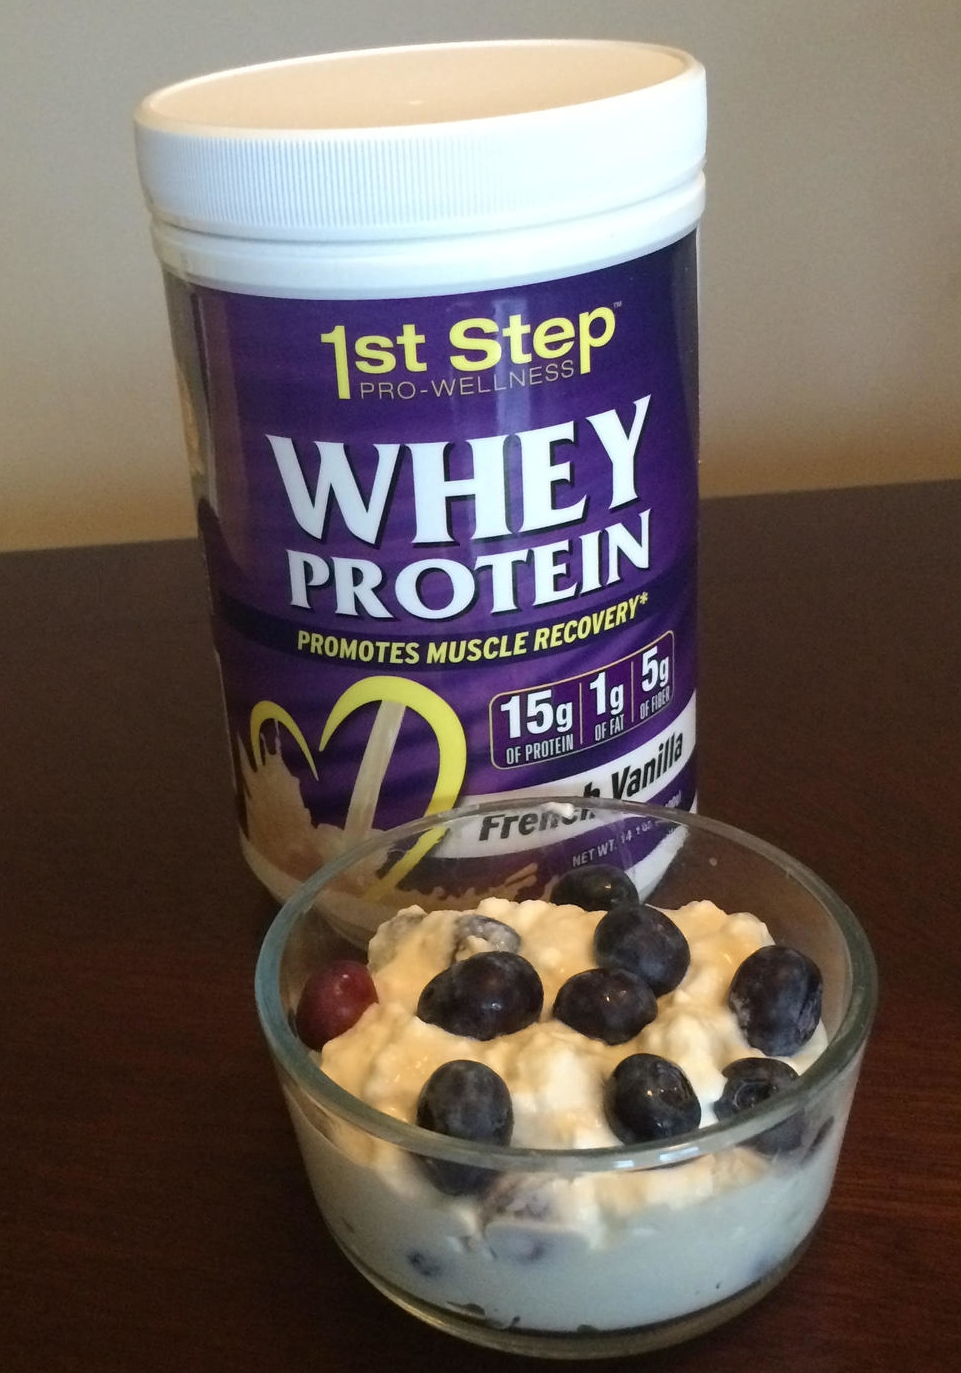 1st Step Pro-Wellness protein pudding